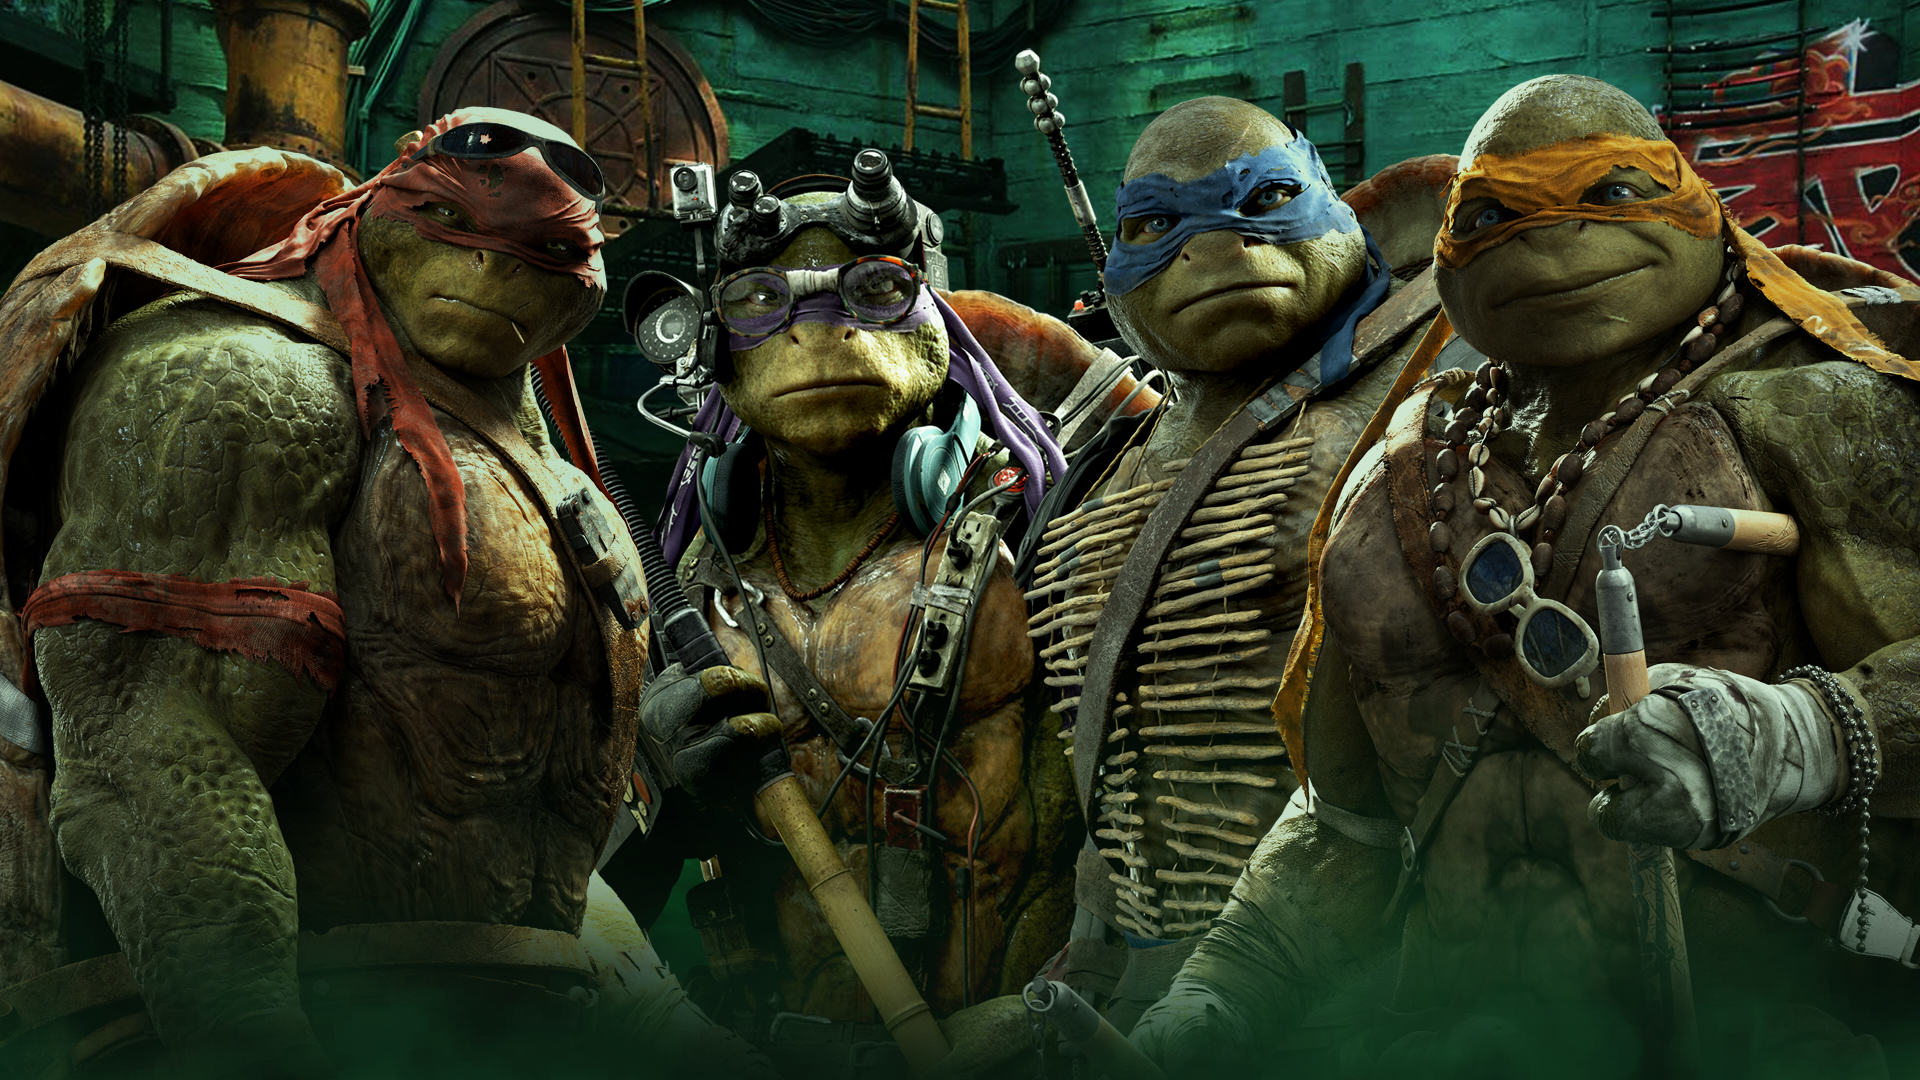 ninja turtles 135365 Heres Why A Guy Smuggled 51 Turtles In His Trousers